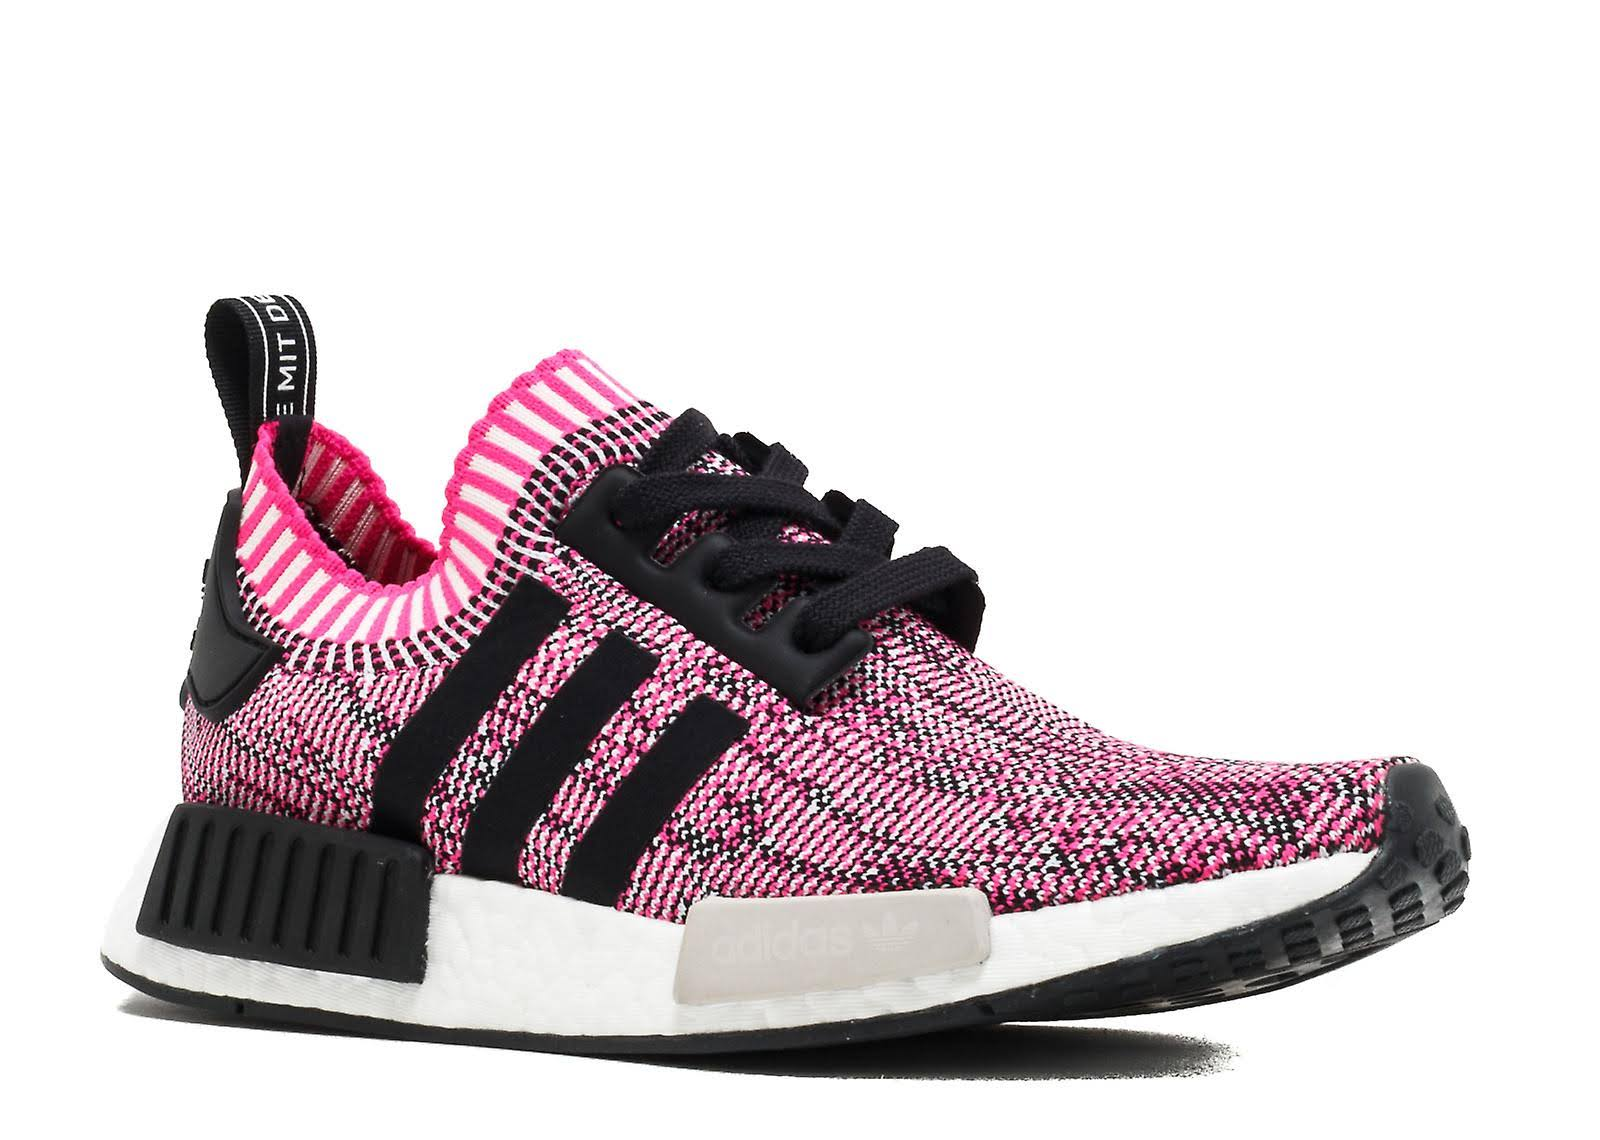 Adidas NMD R1 W Pk - BB2363 - Shoes 7.5 UK